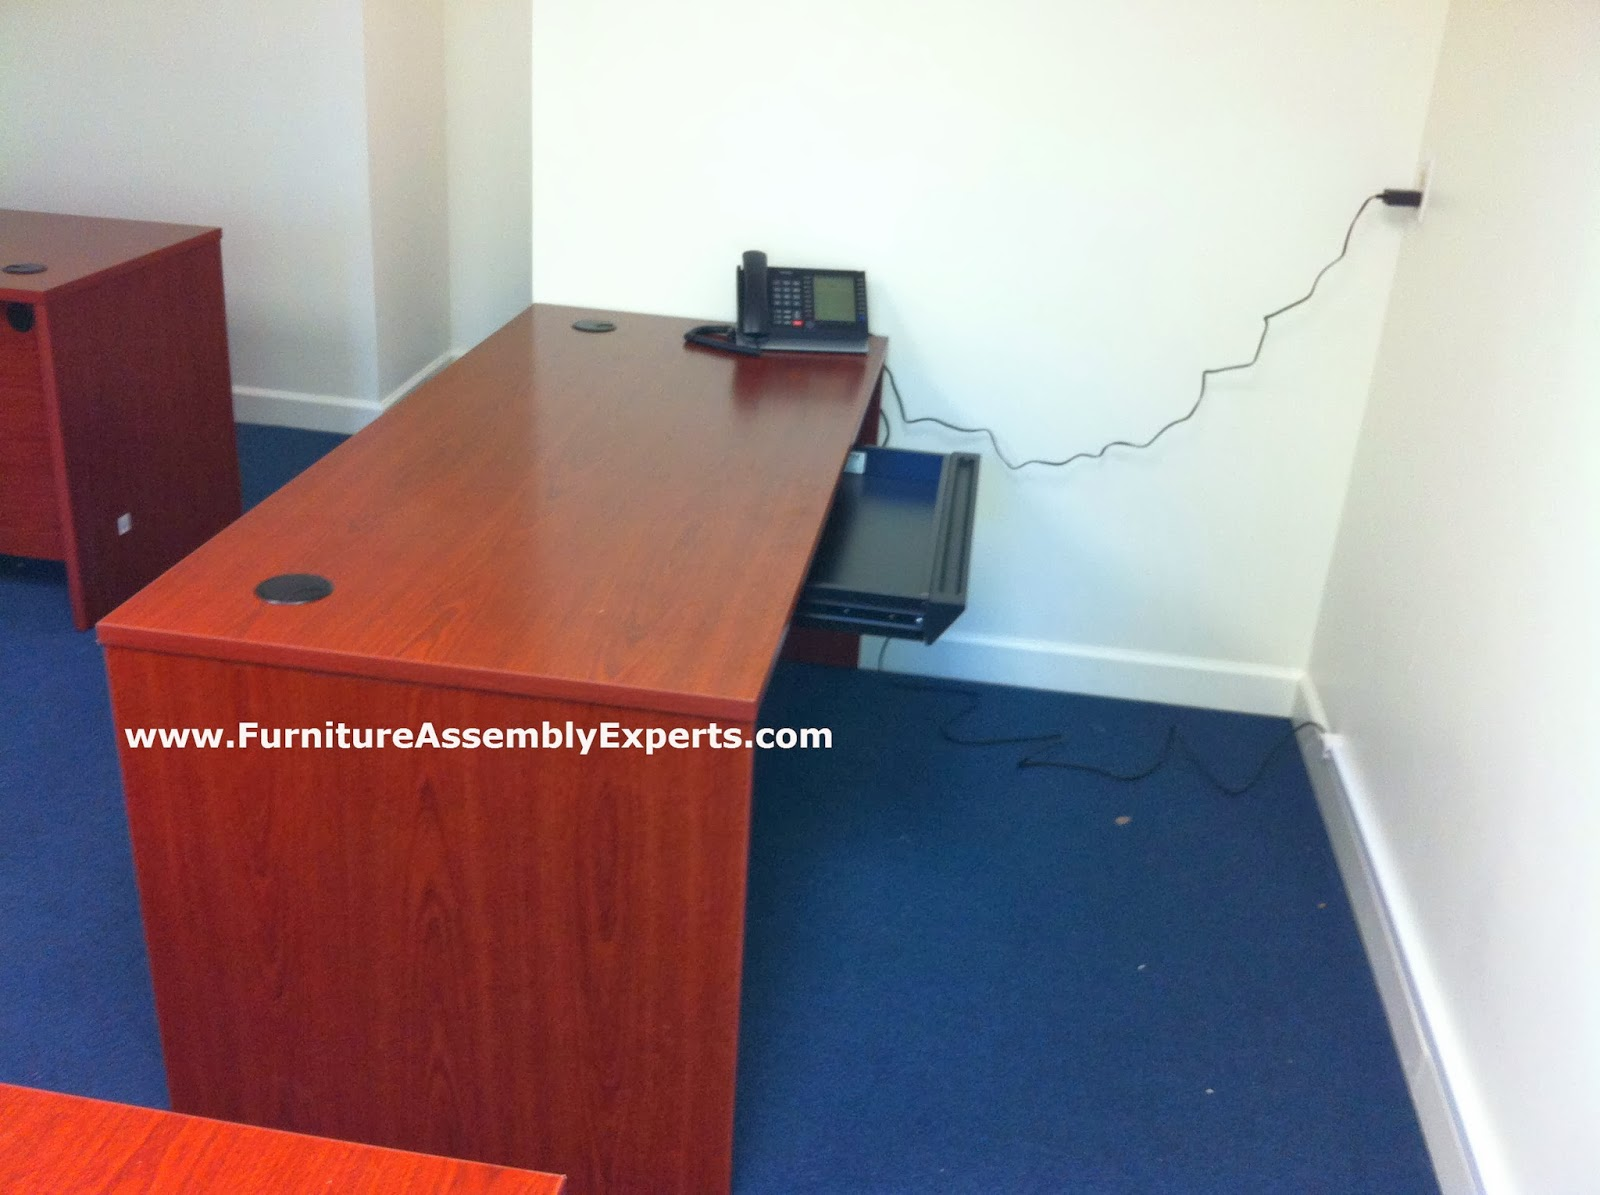 Peachy Md Office Furniture Installers Same Day Service Desks Home Interior And Landscaping Ologienasavecom